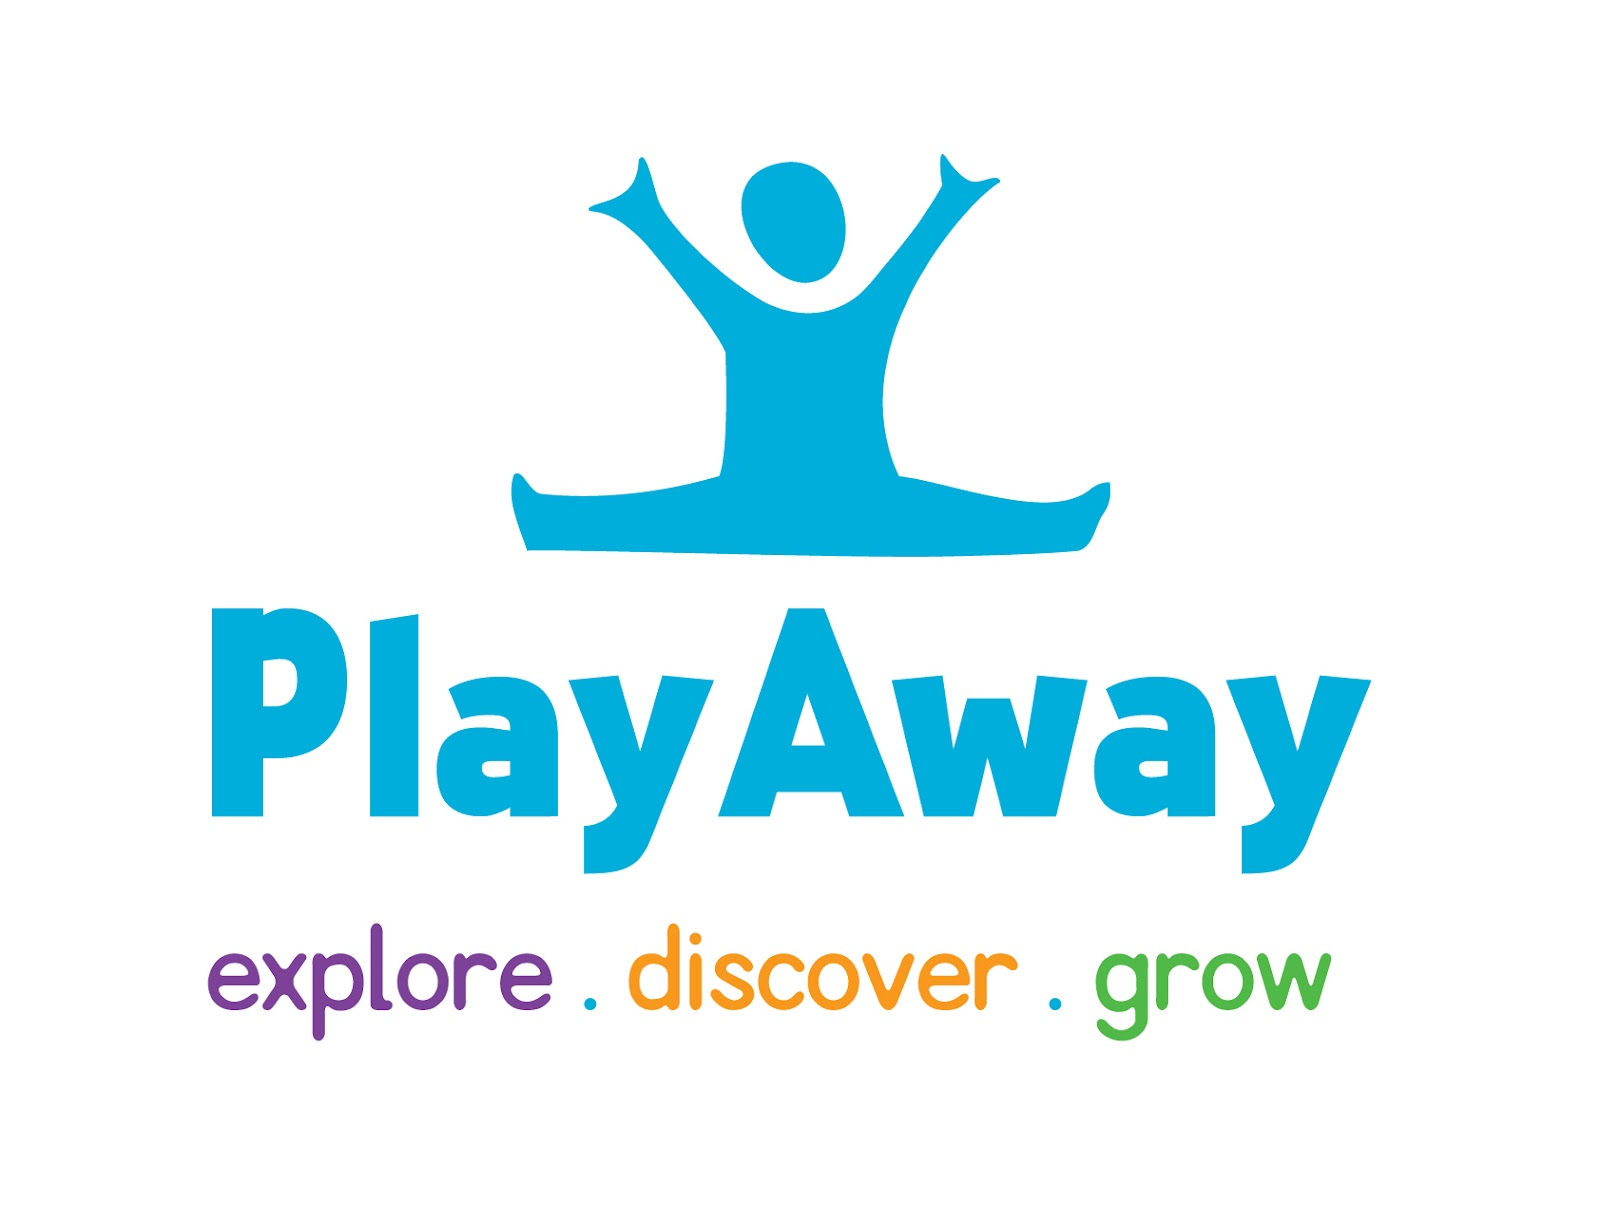 PlayAway_logo_with_tagline.jpg